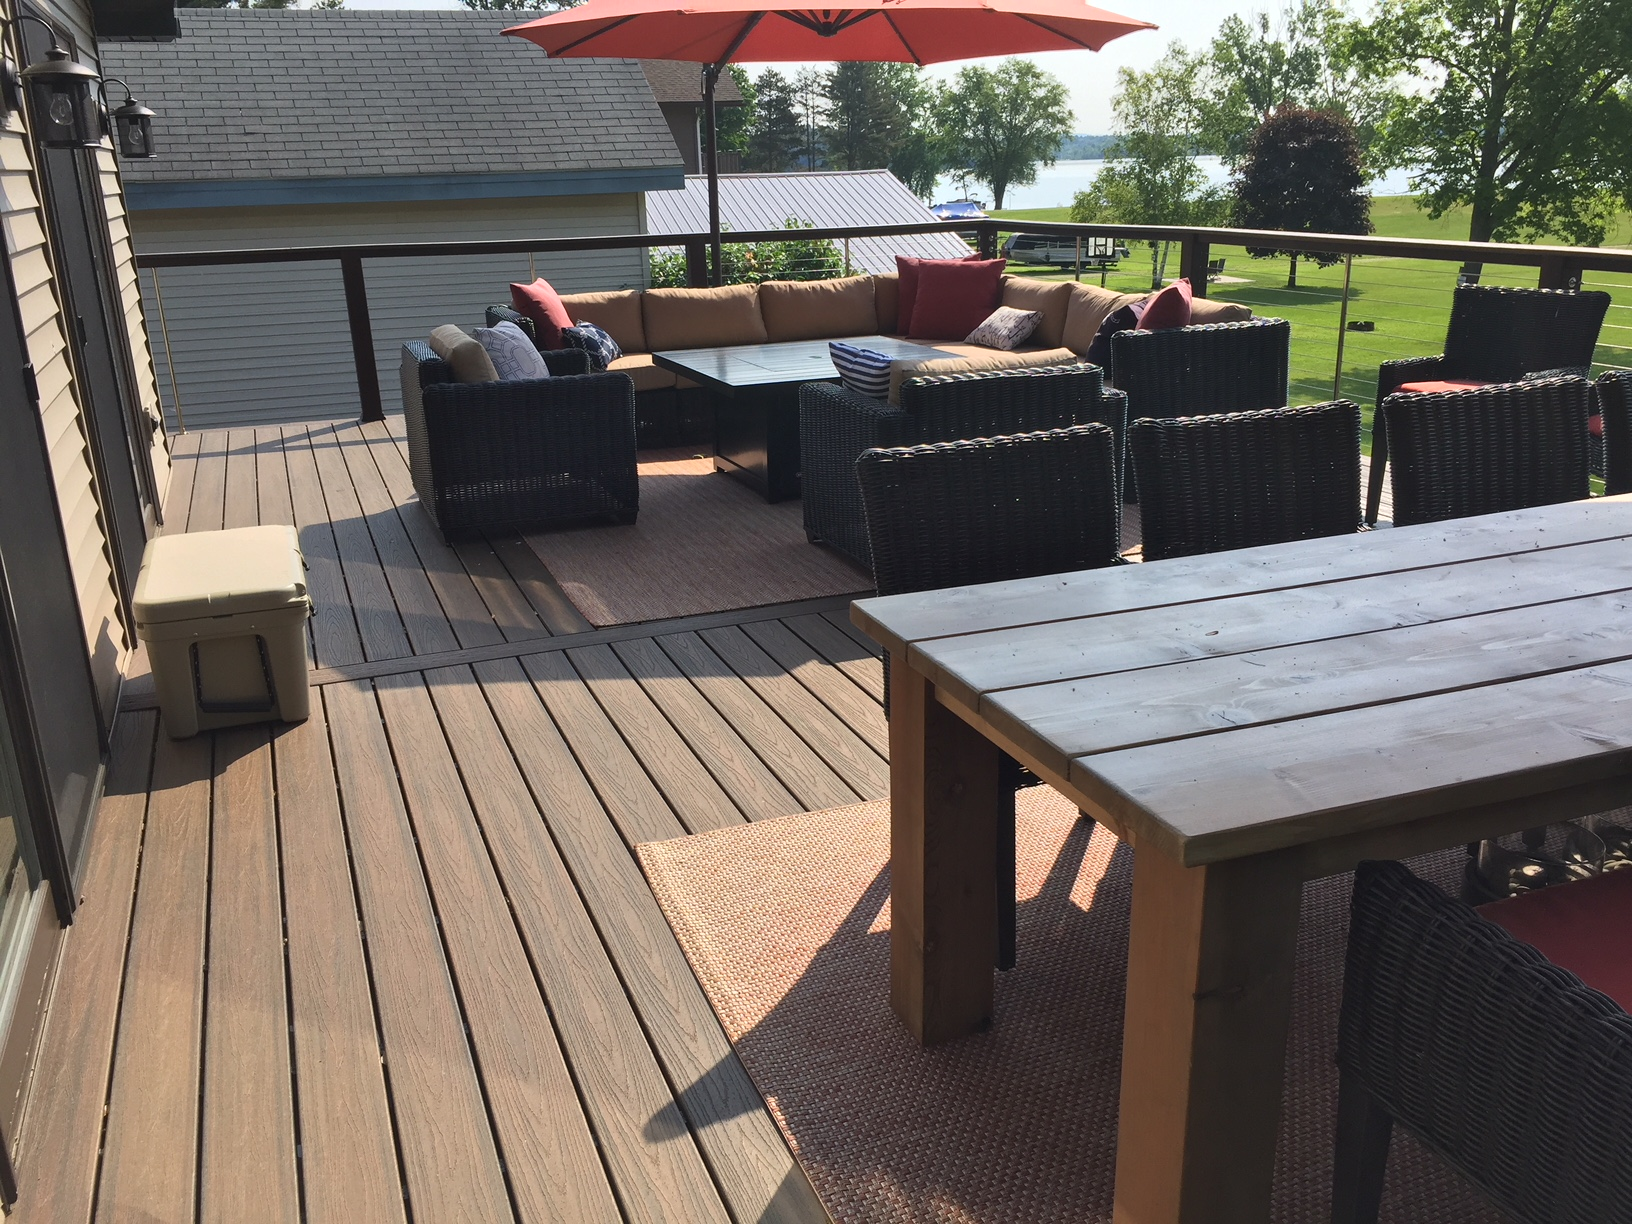 Outdoor Living | Patriot Construction of Upstate New York ... on Patriot Outdoor Living id=50069